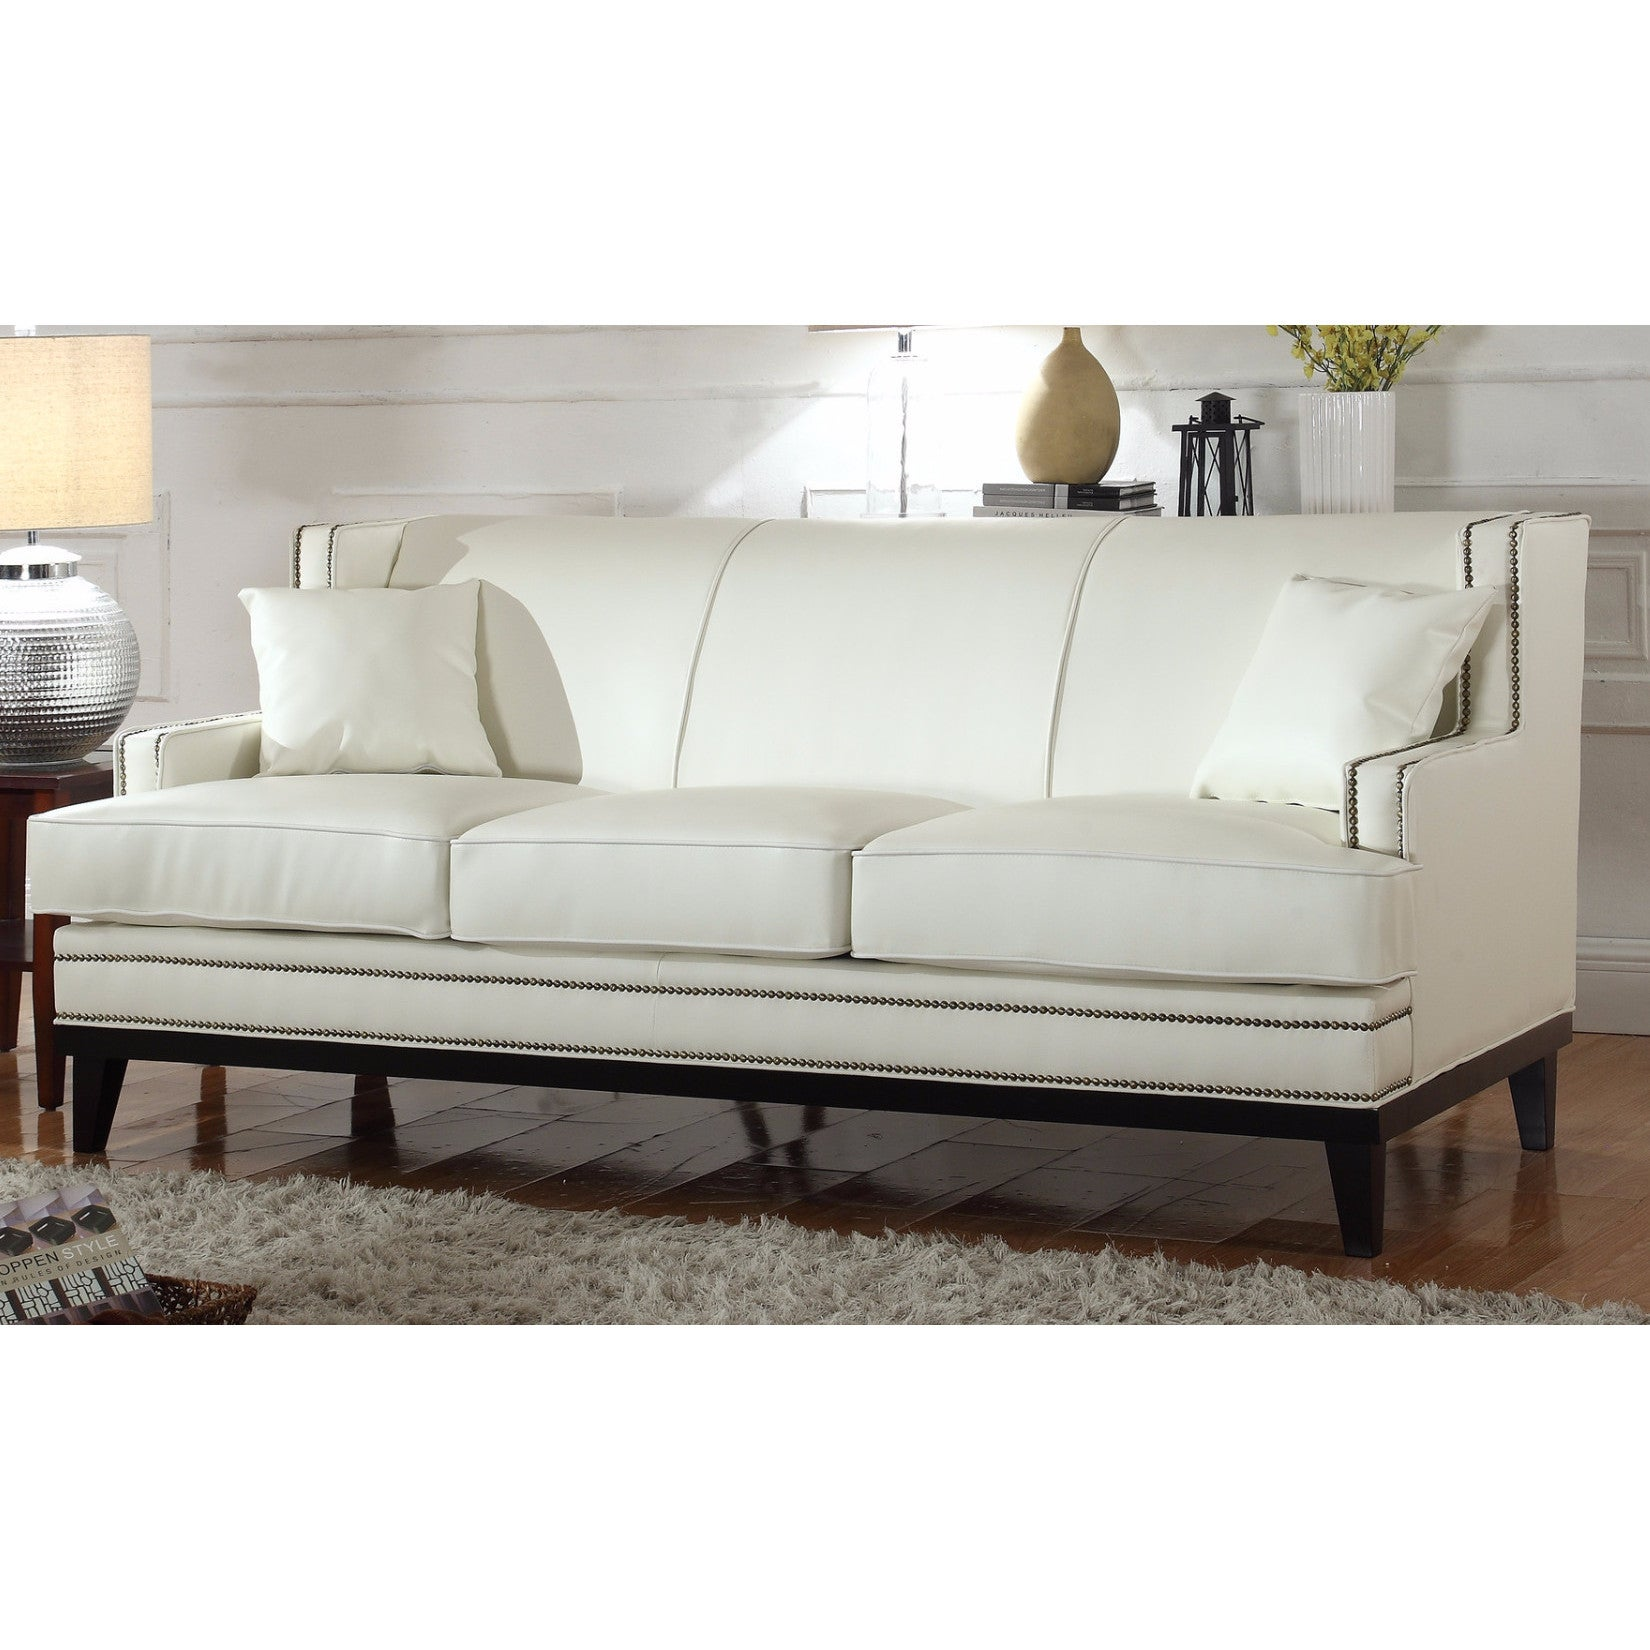 Modern Soft Bonded Leather Sofa With Nailhead Trim Details (Option: White)